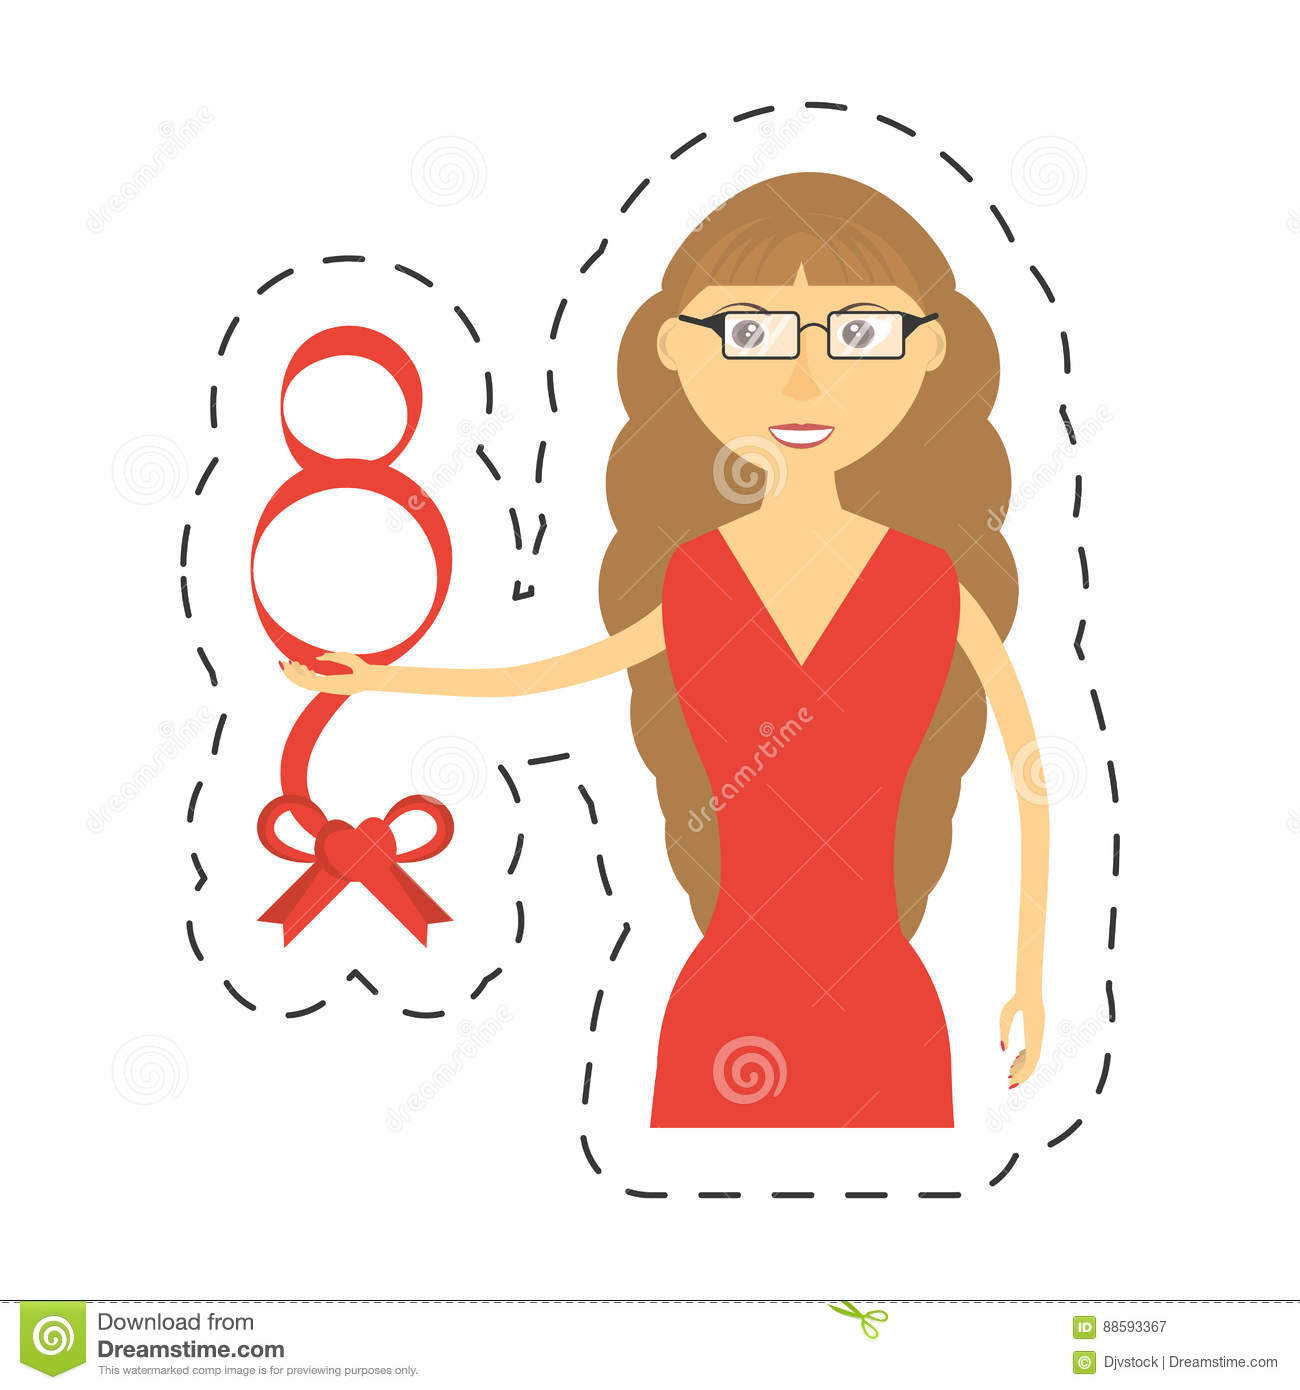 6d04ef1f4 Elegant Woman Red Dress Icon Stock Illustration - Illustration of ...